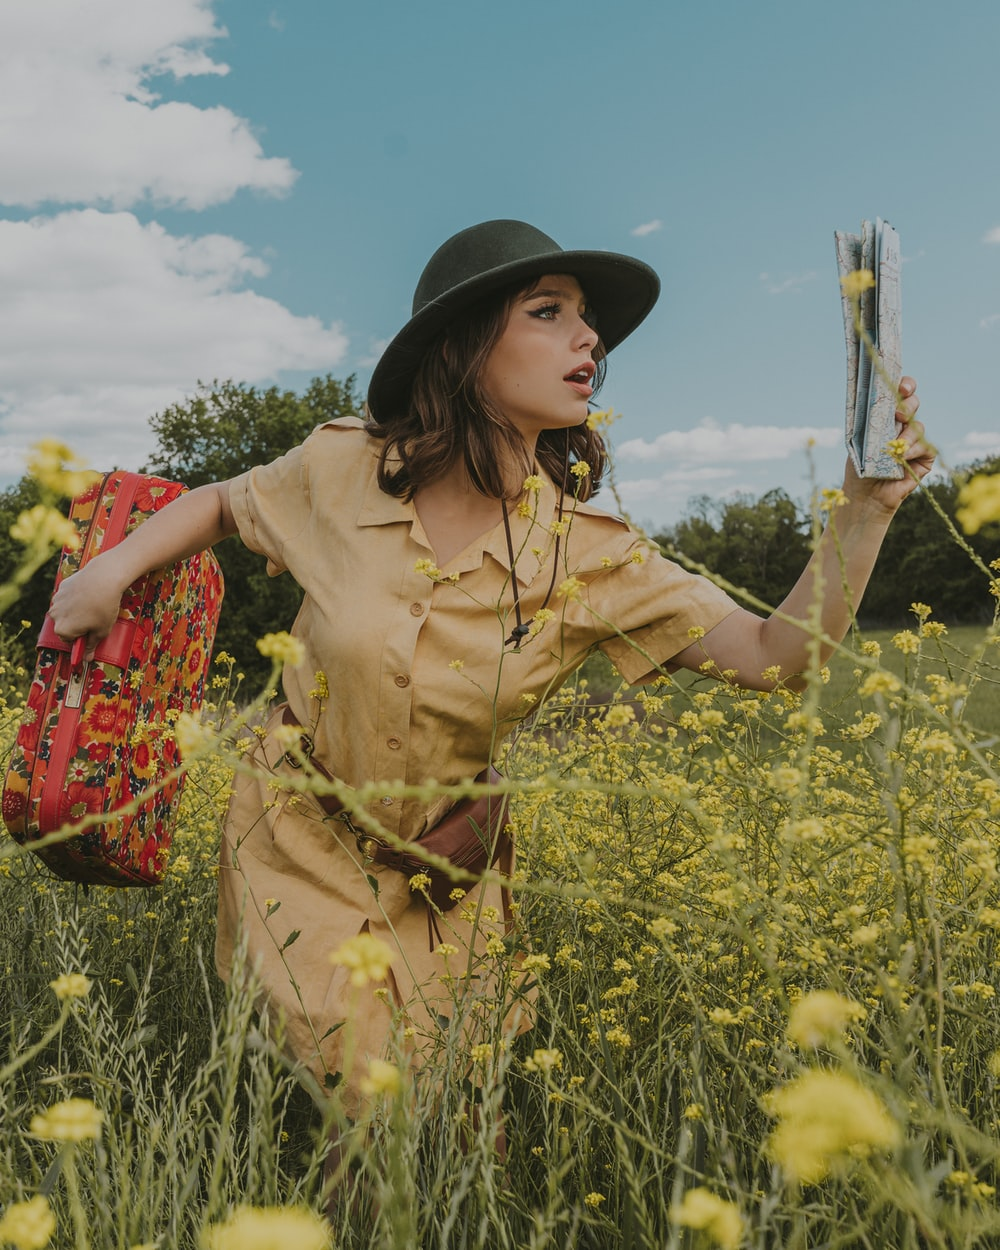 woman in brown dress and black hat standing on yellow flower field during daytime